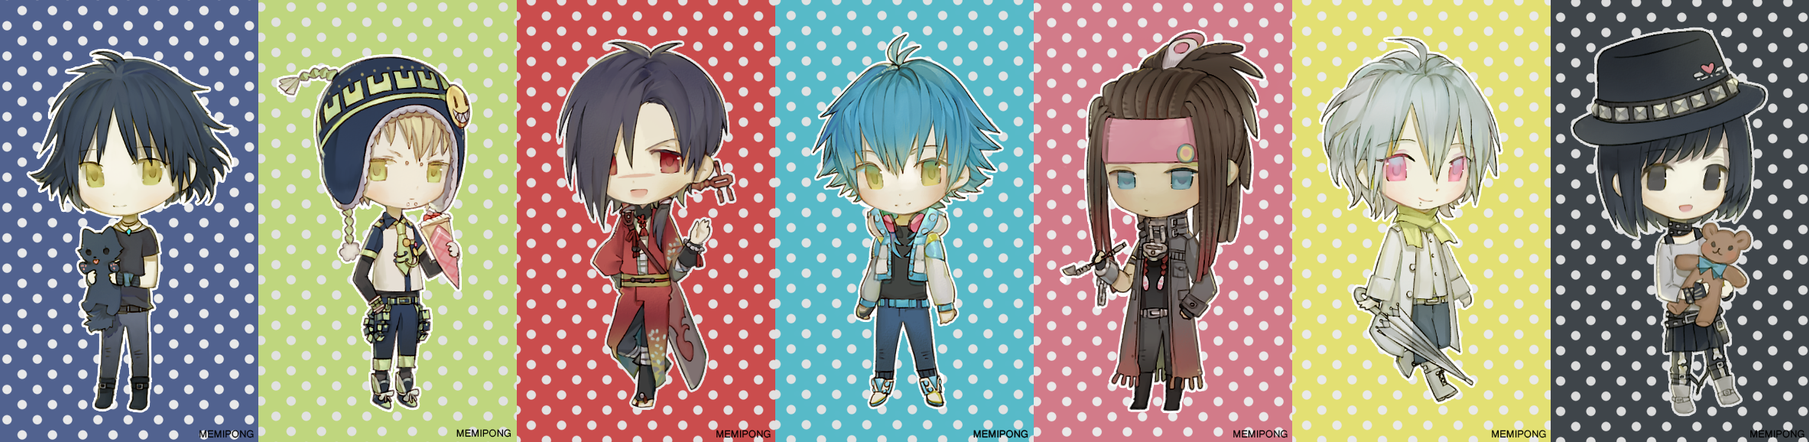 chibi practice on DMMd by Memipong